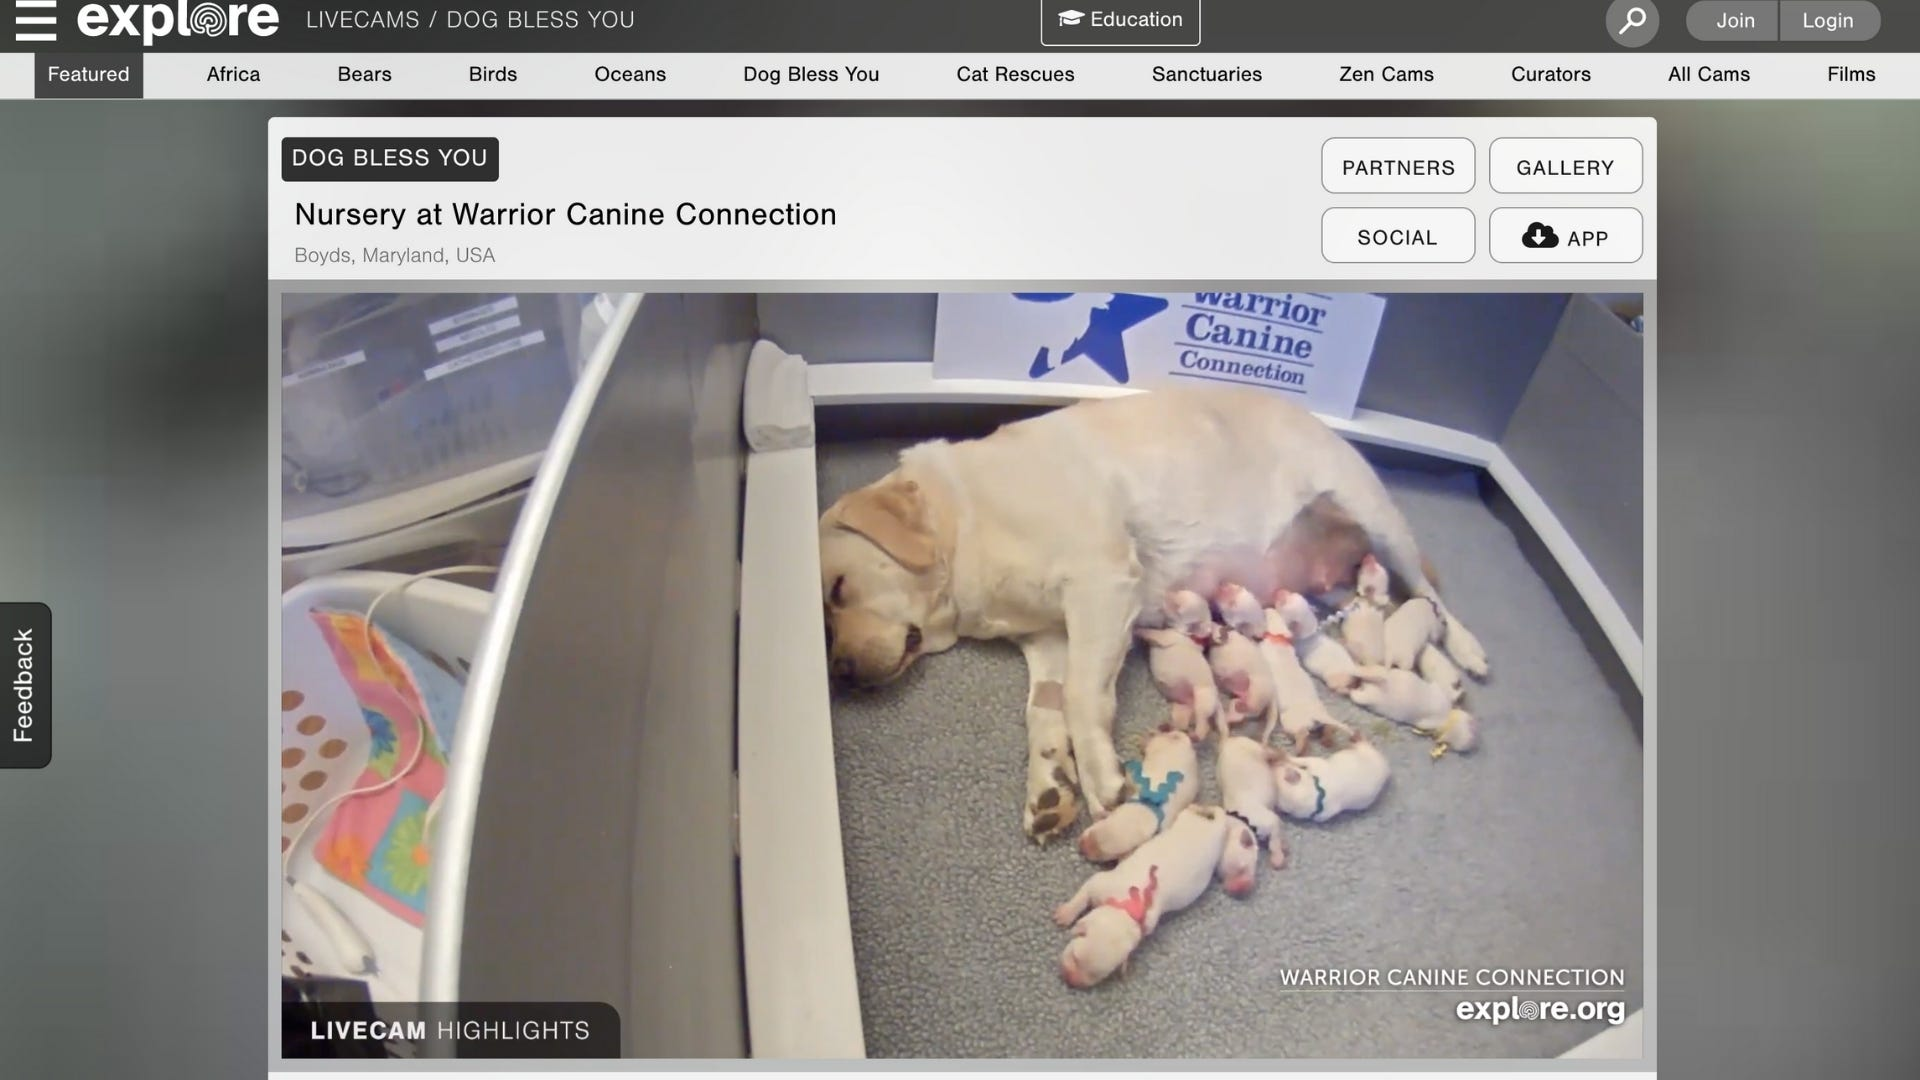 Live cam of puppies drinking milk from mom